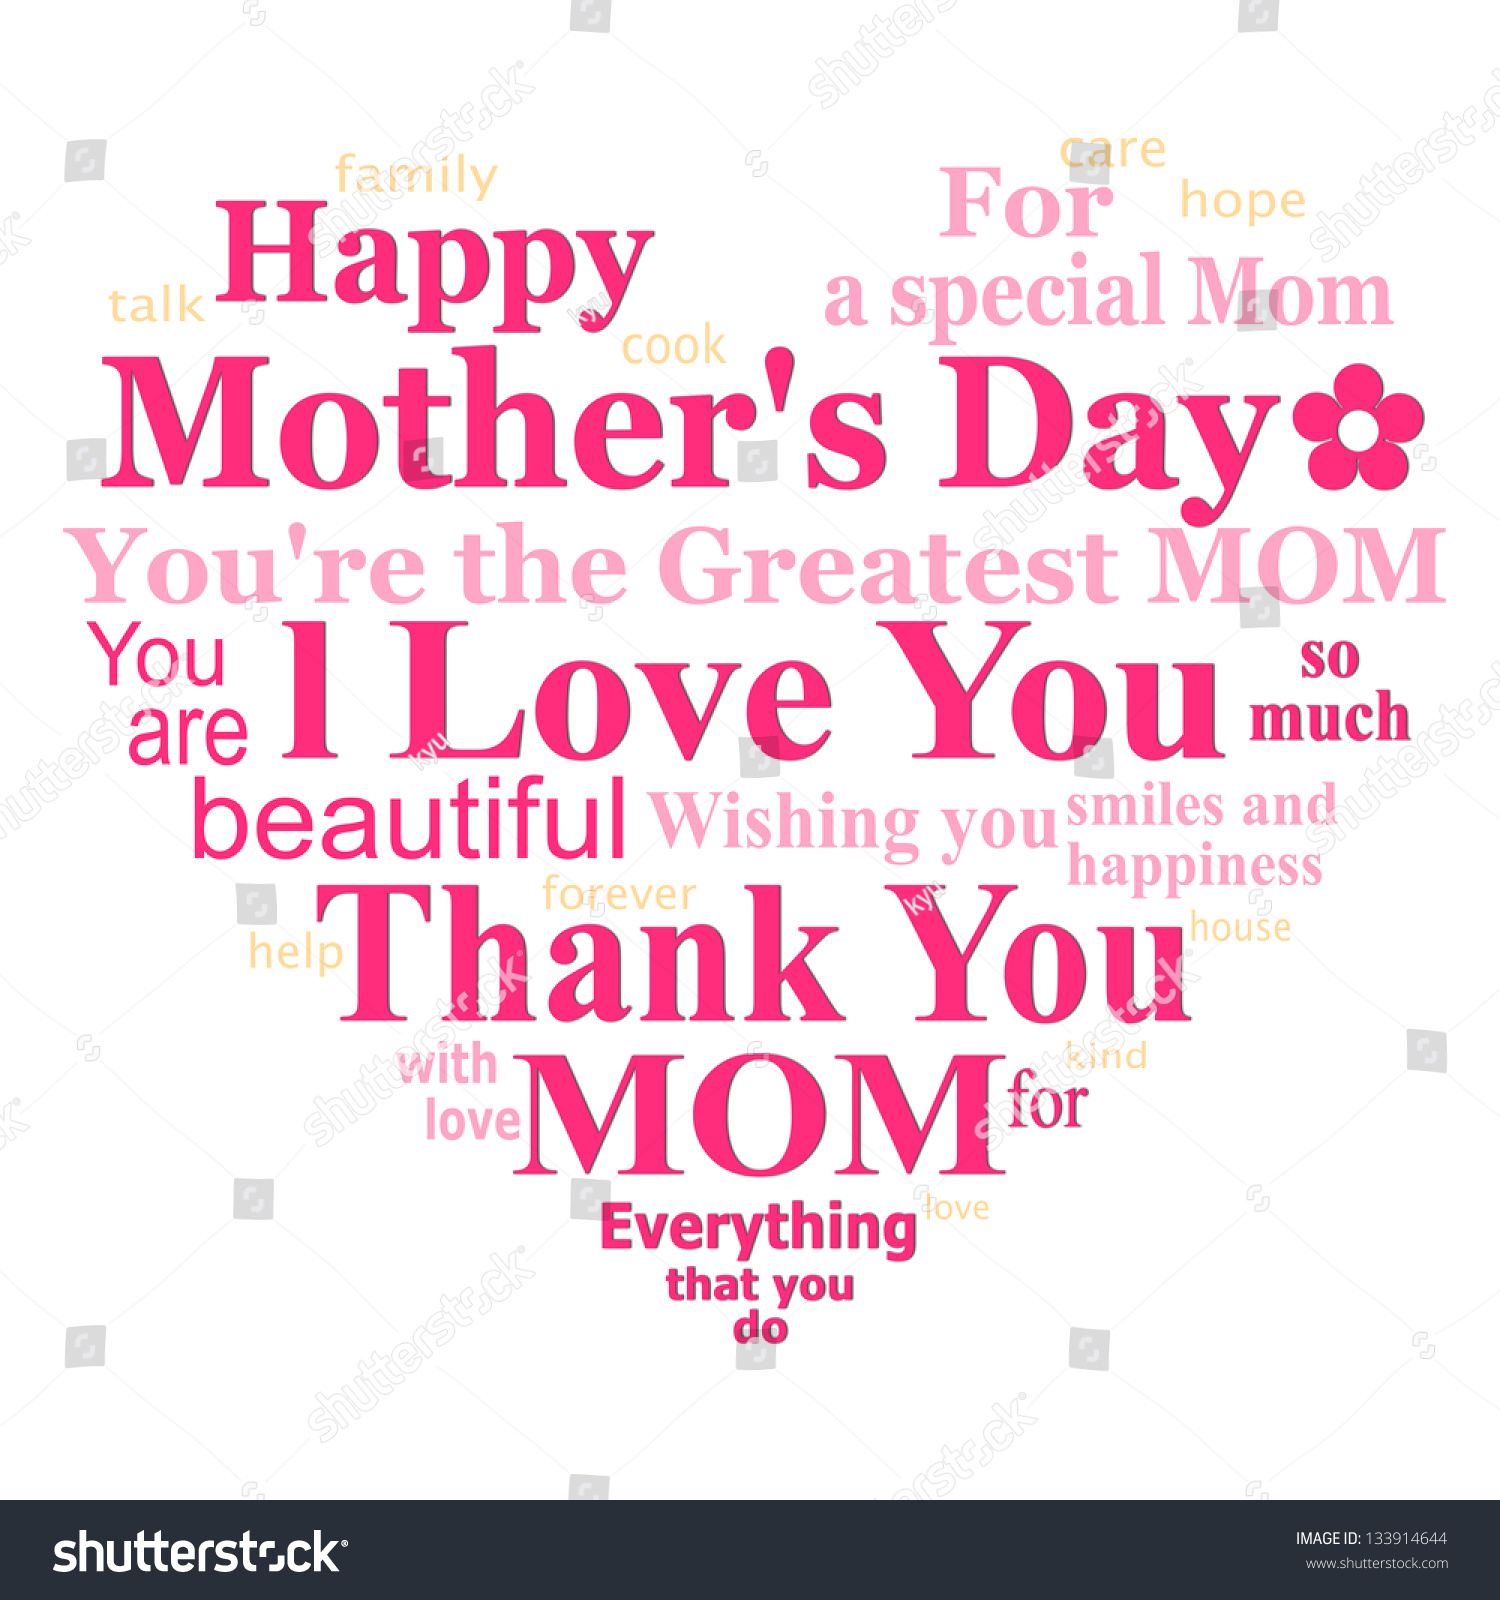 Happy Mothers Day Card Design On Stock Illustration